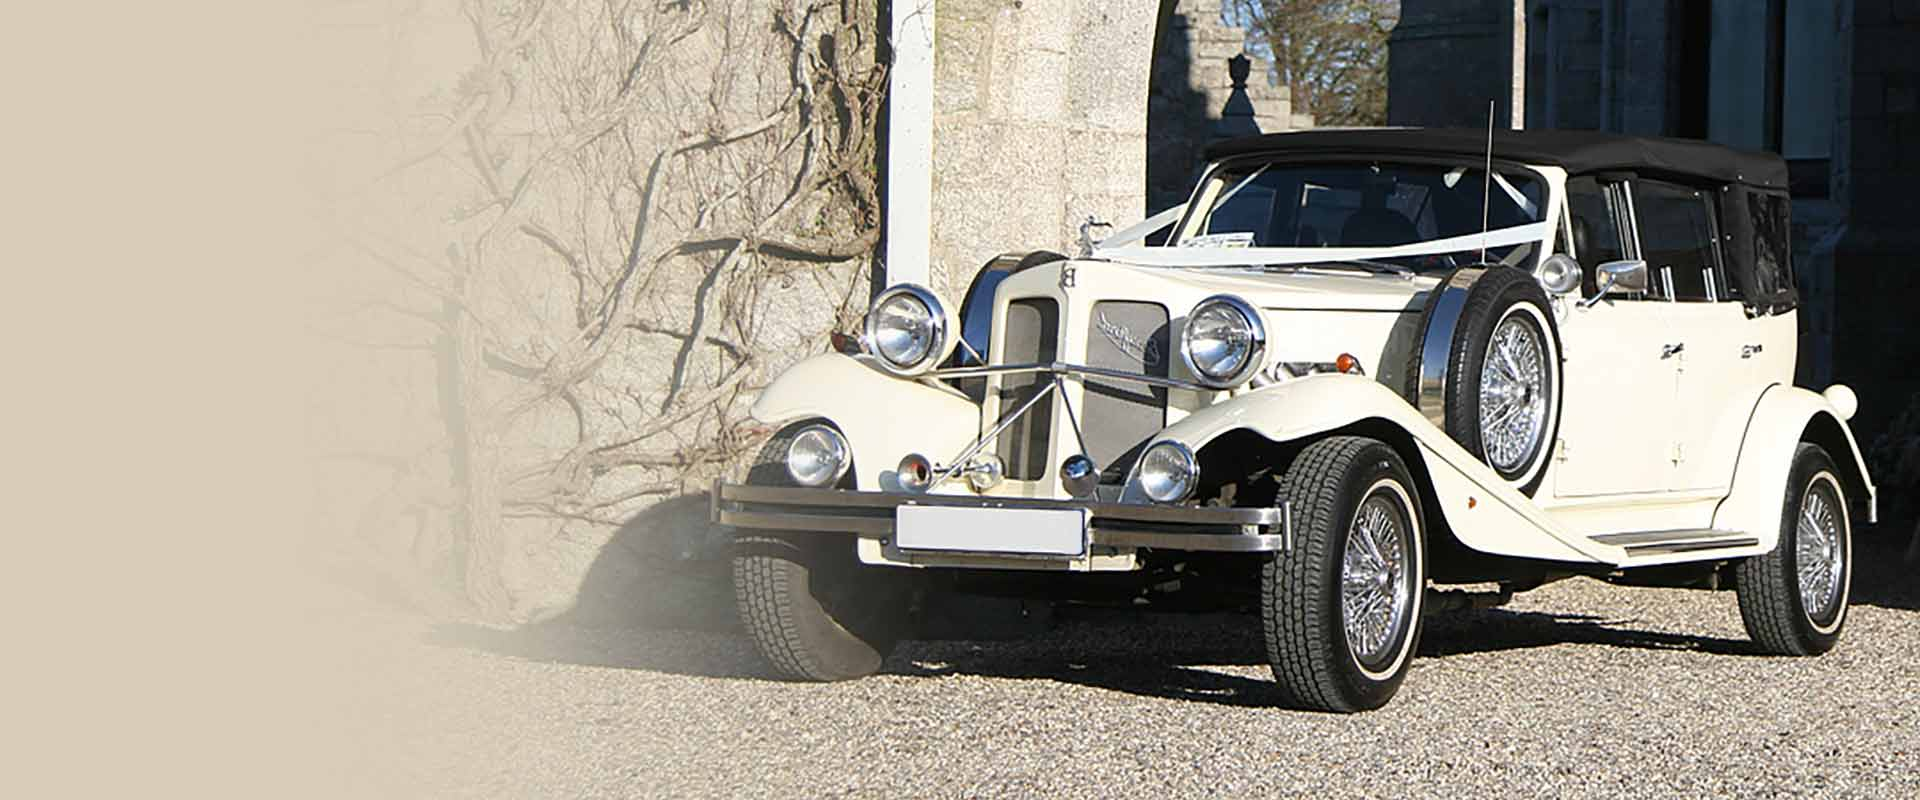 Candeo Wedding cars - Perfect Vintage Cars